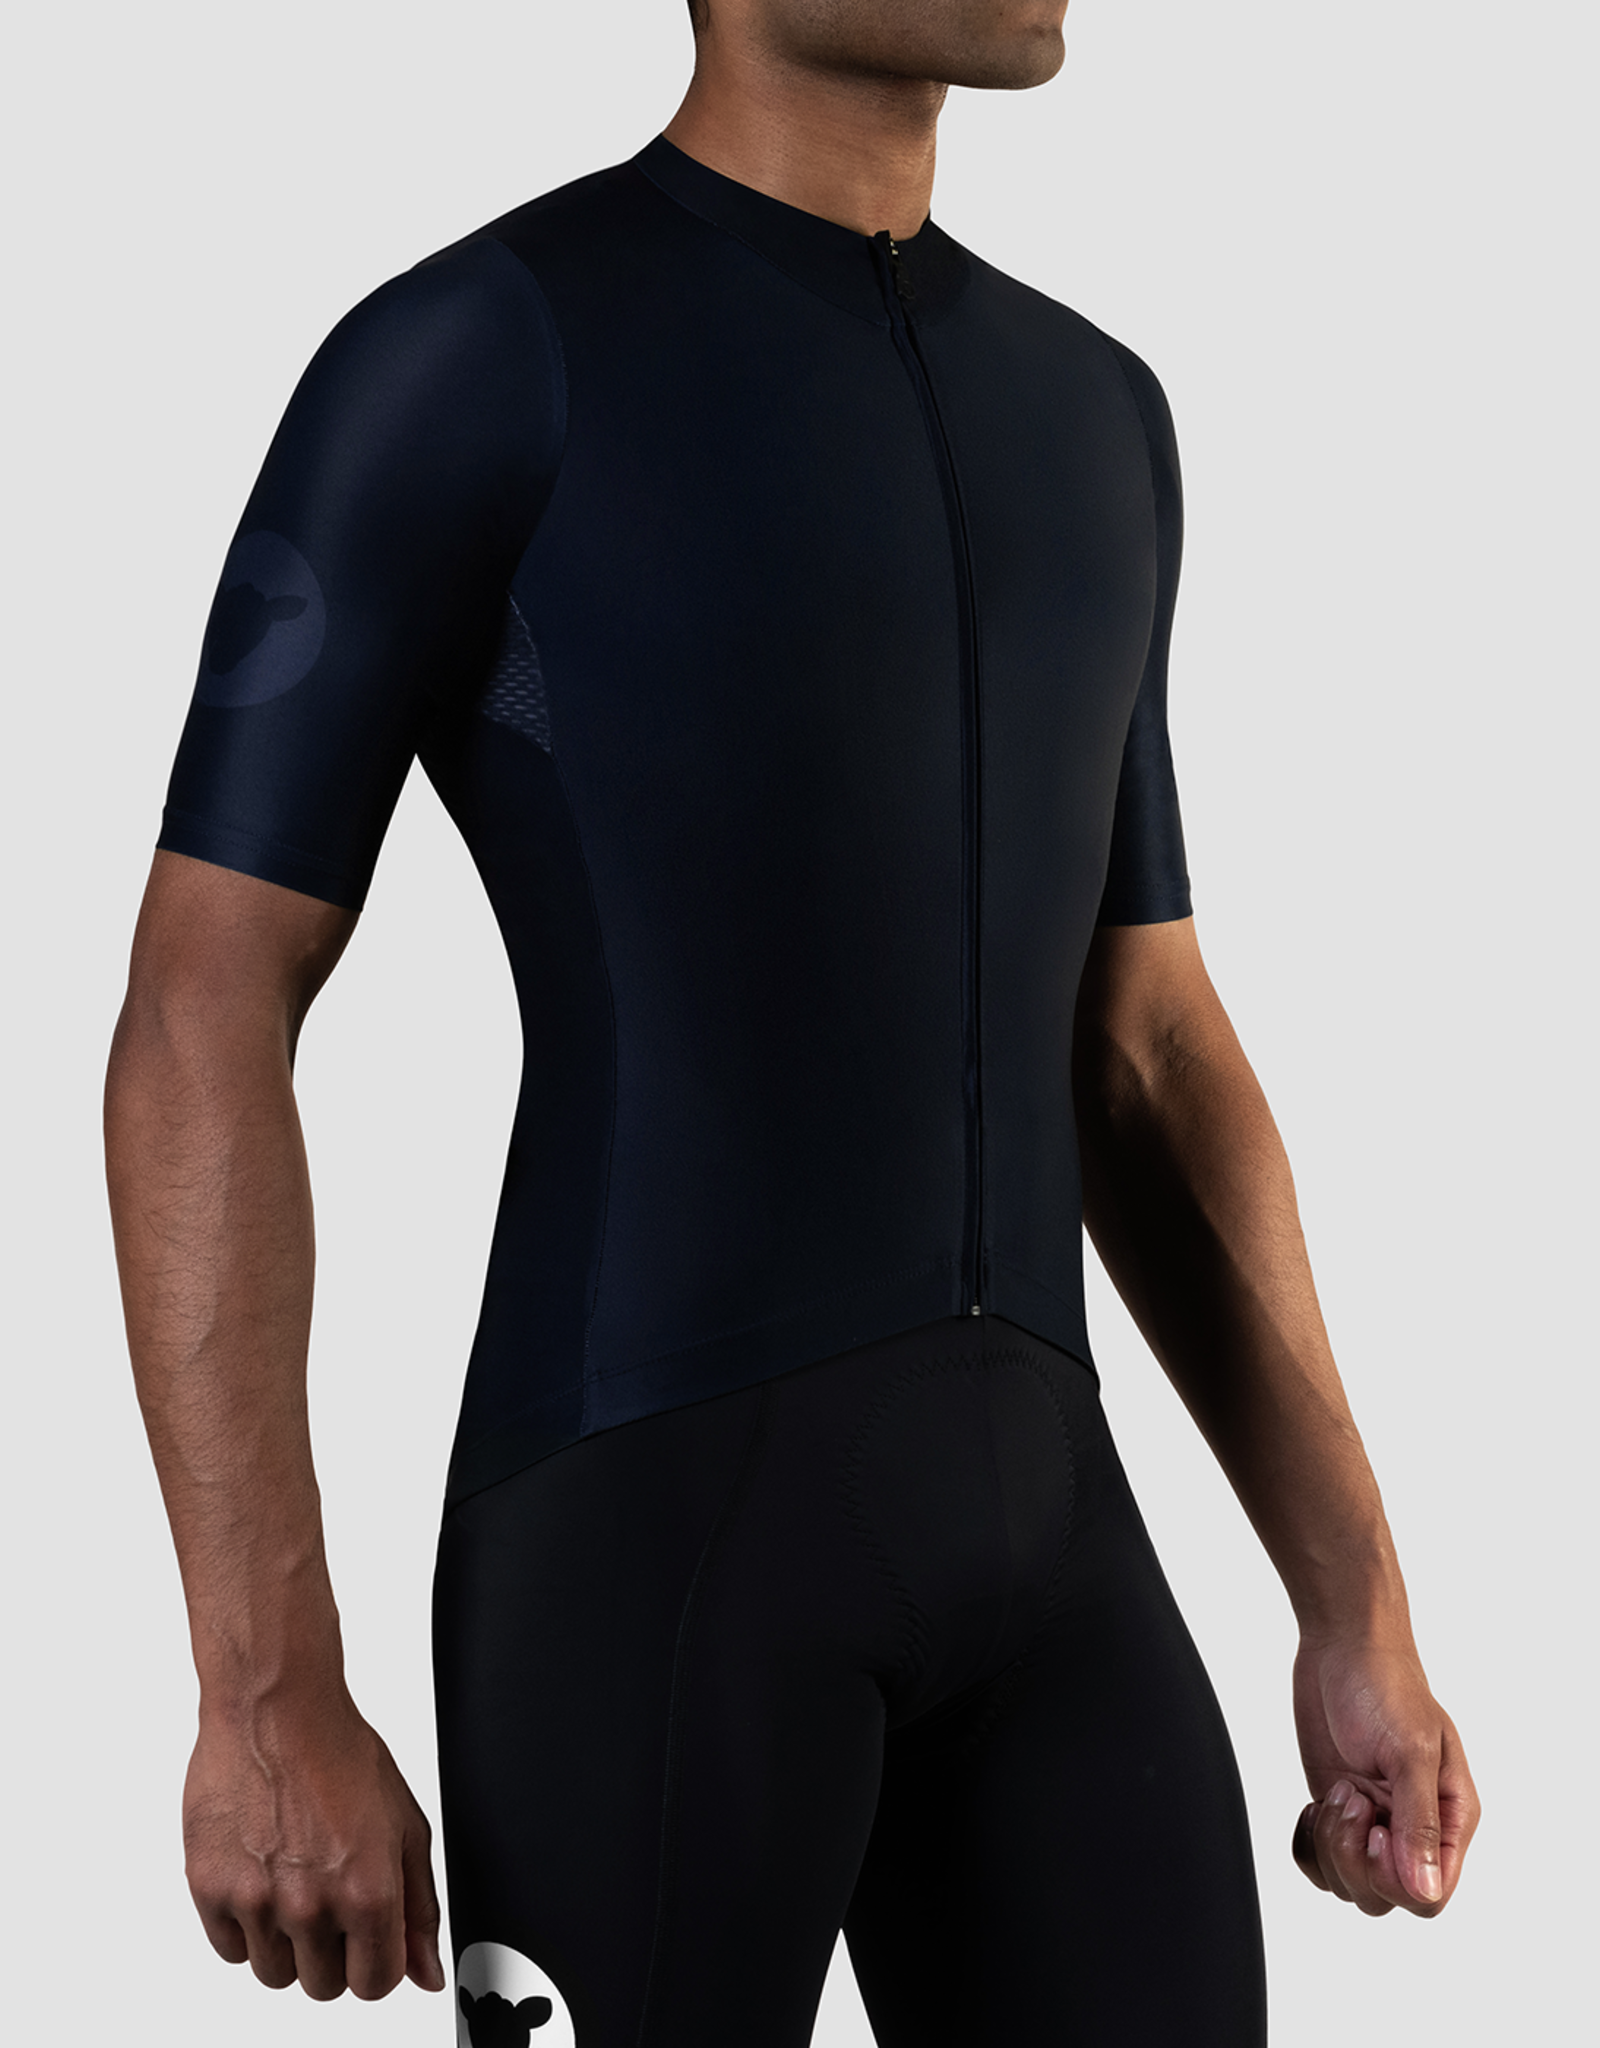 Black Sheep Cycling Men's TEAM Jersey with short sleeves - Block Midnight